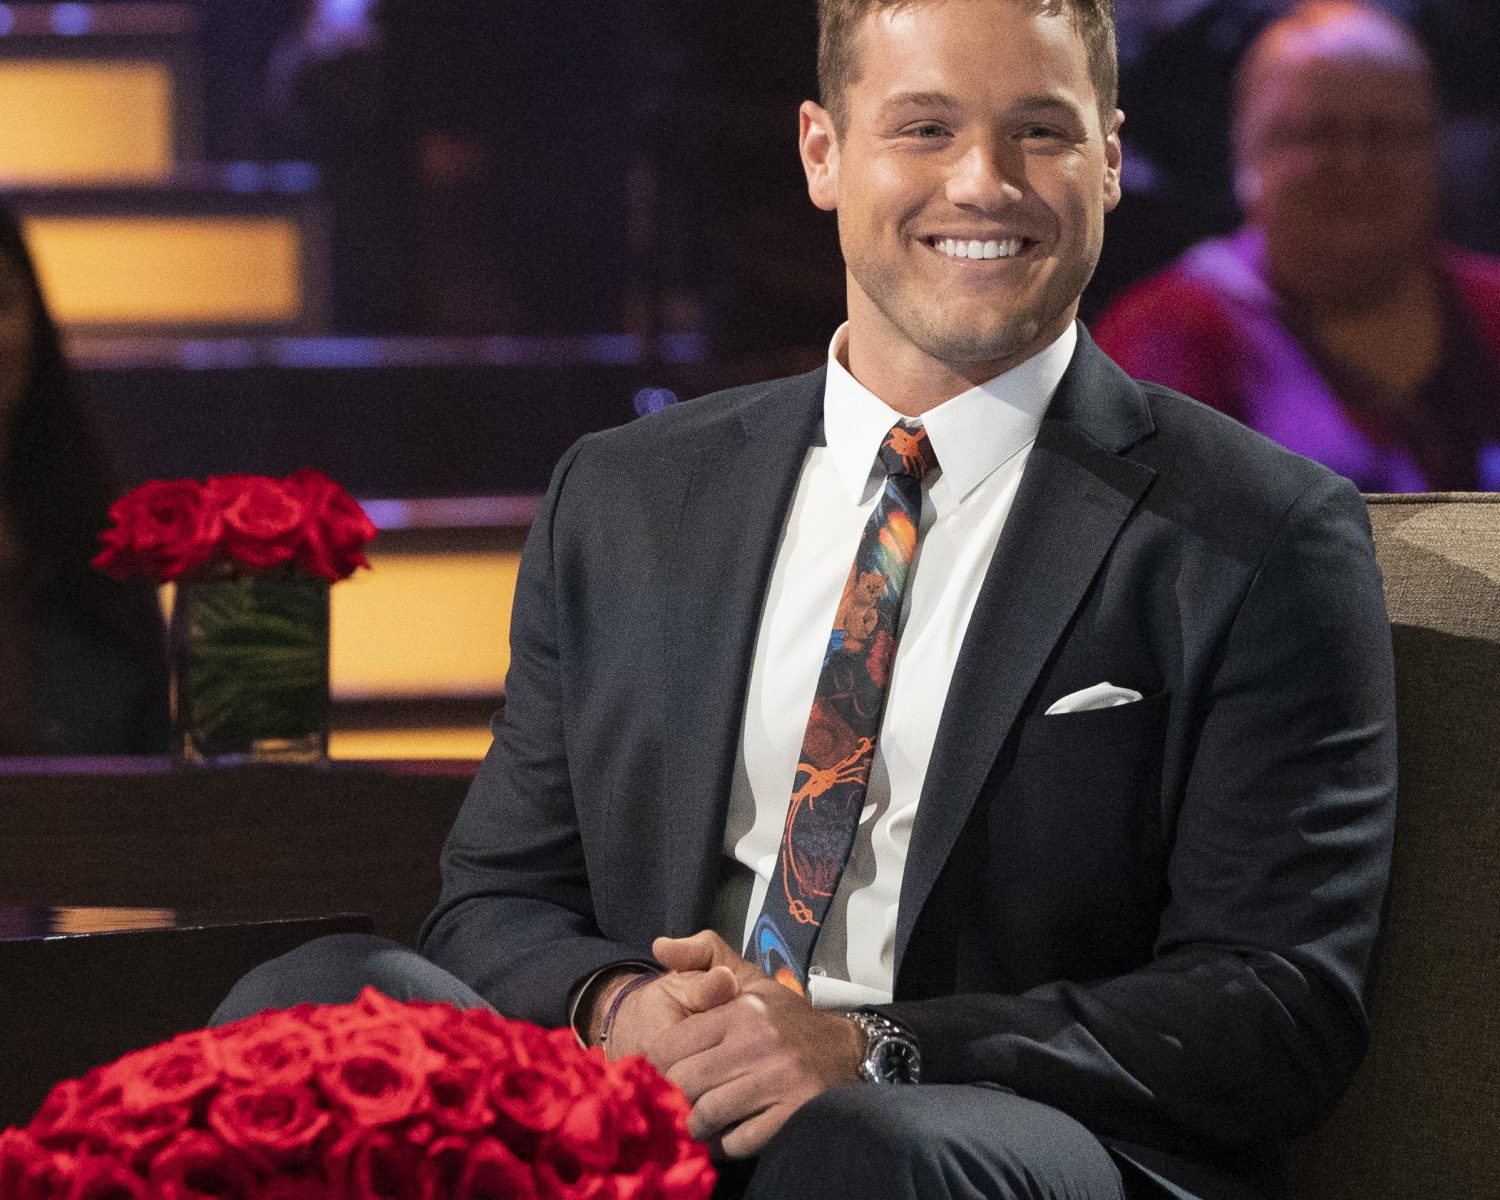 Bachelor Colton Underwood Has a Neil Lane Engagement Ring After All